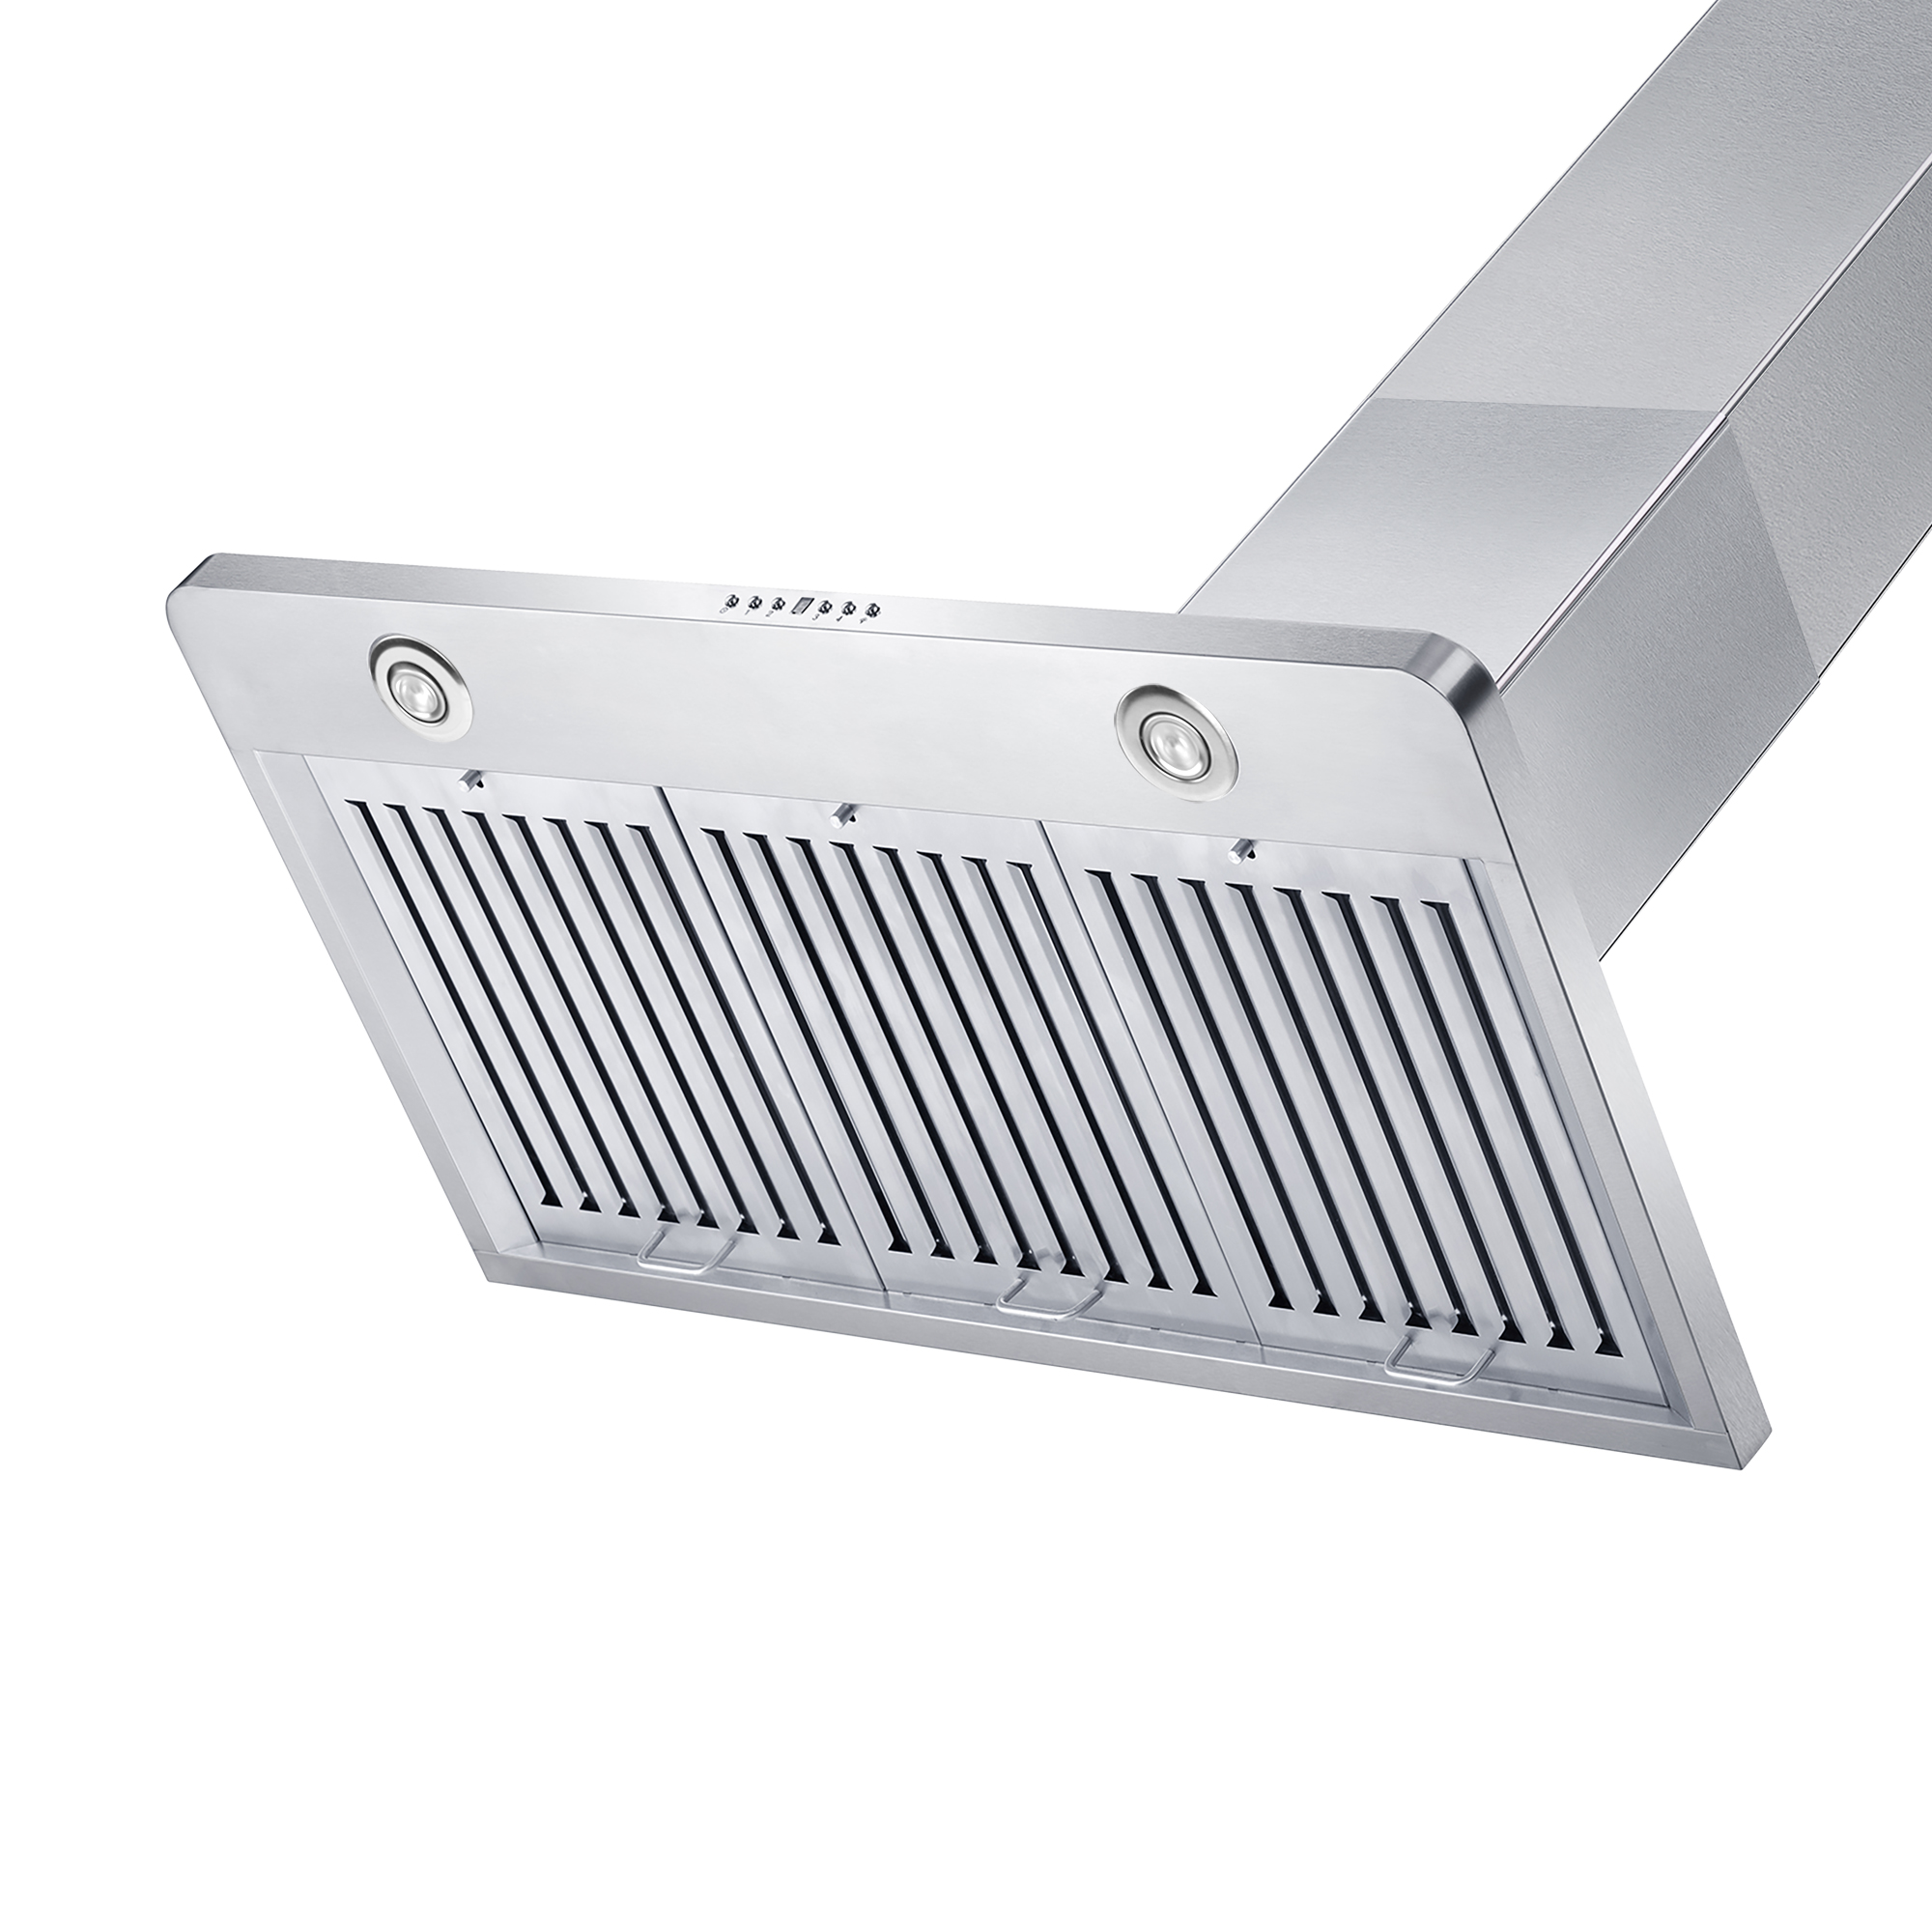 zline-stainless-steel-wall-mounted-range-hood-KF1-side-under.jpg